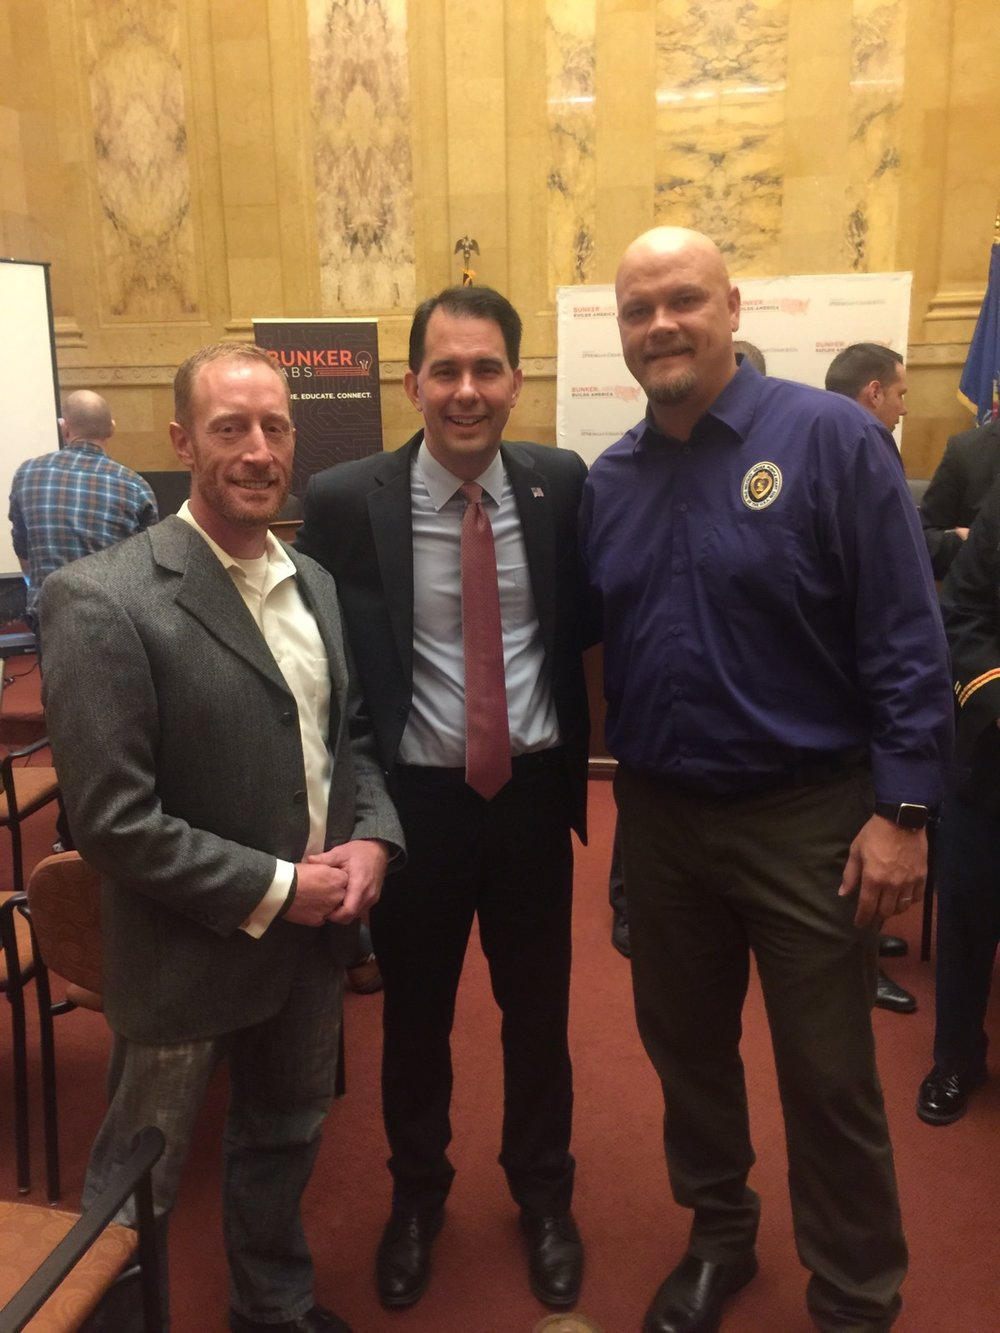 WD's Travis James West at the Bunker Labs Muster with Wisconsin Governor Scott Walker and veterans advocate and attorney Jason Johns.